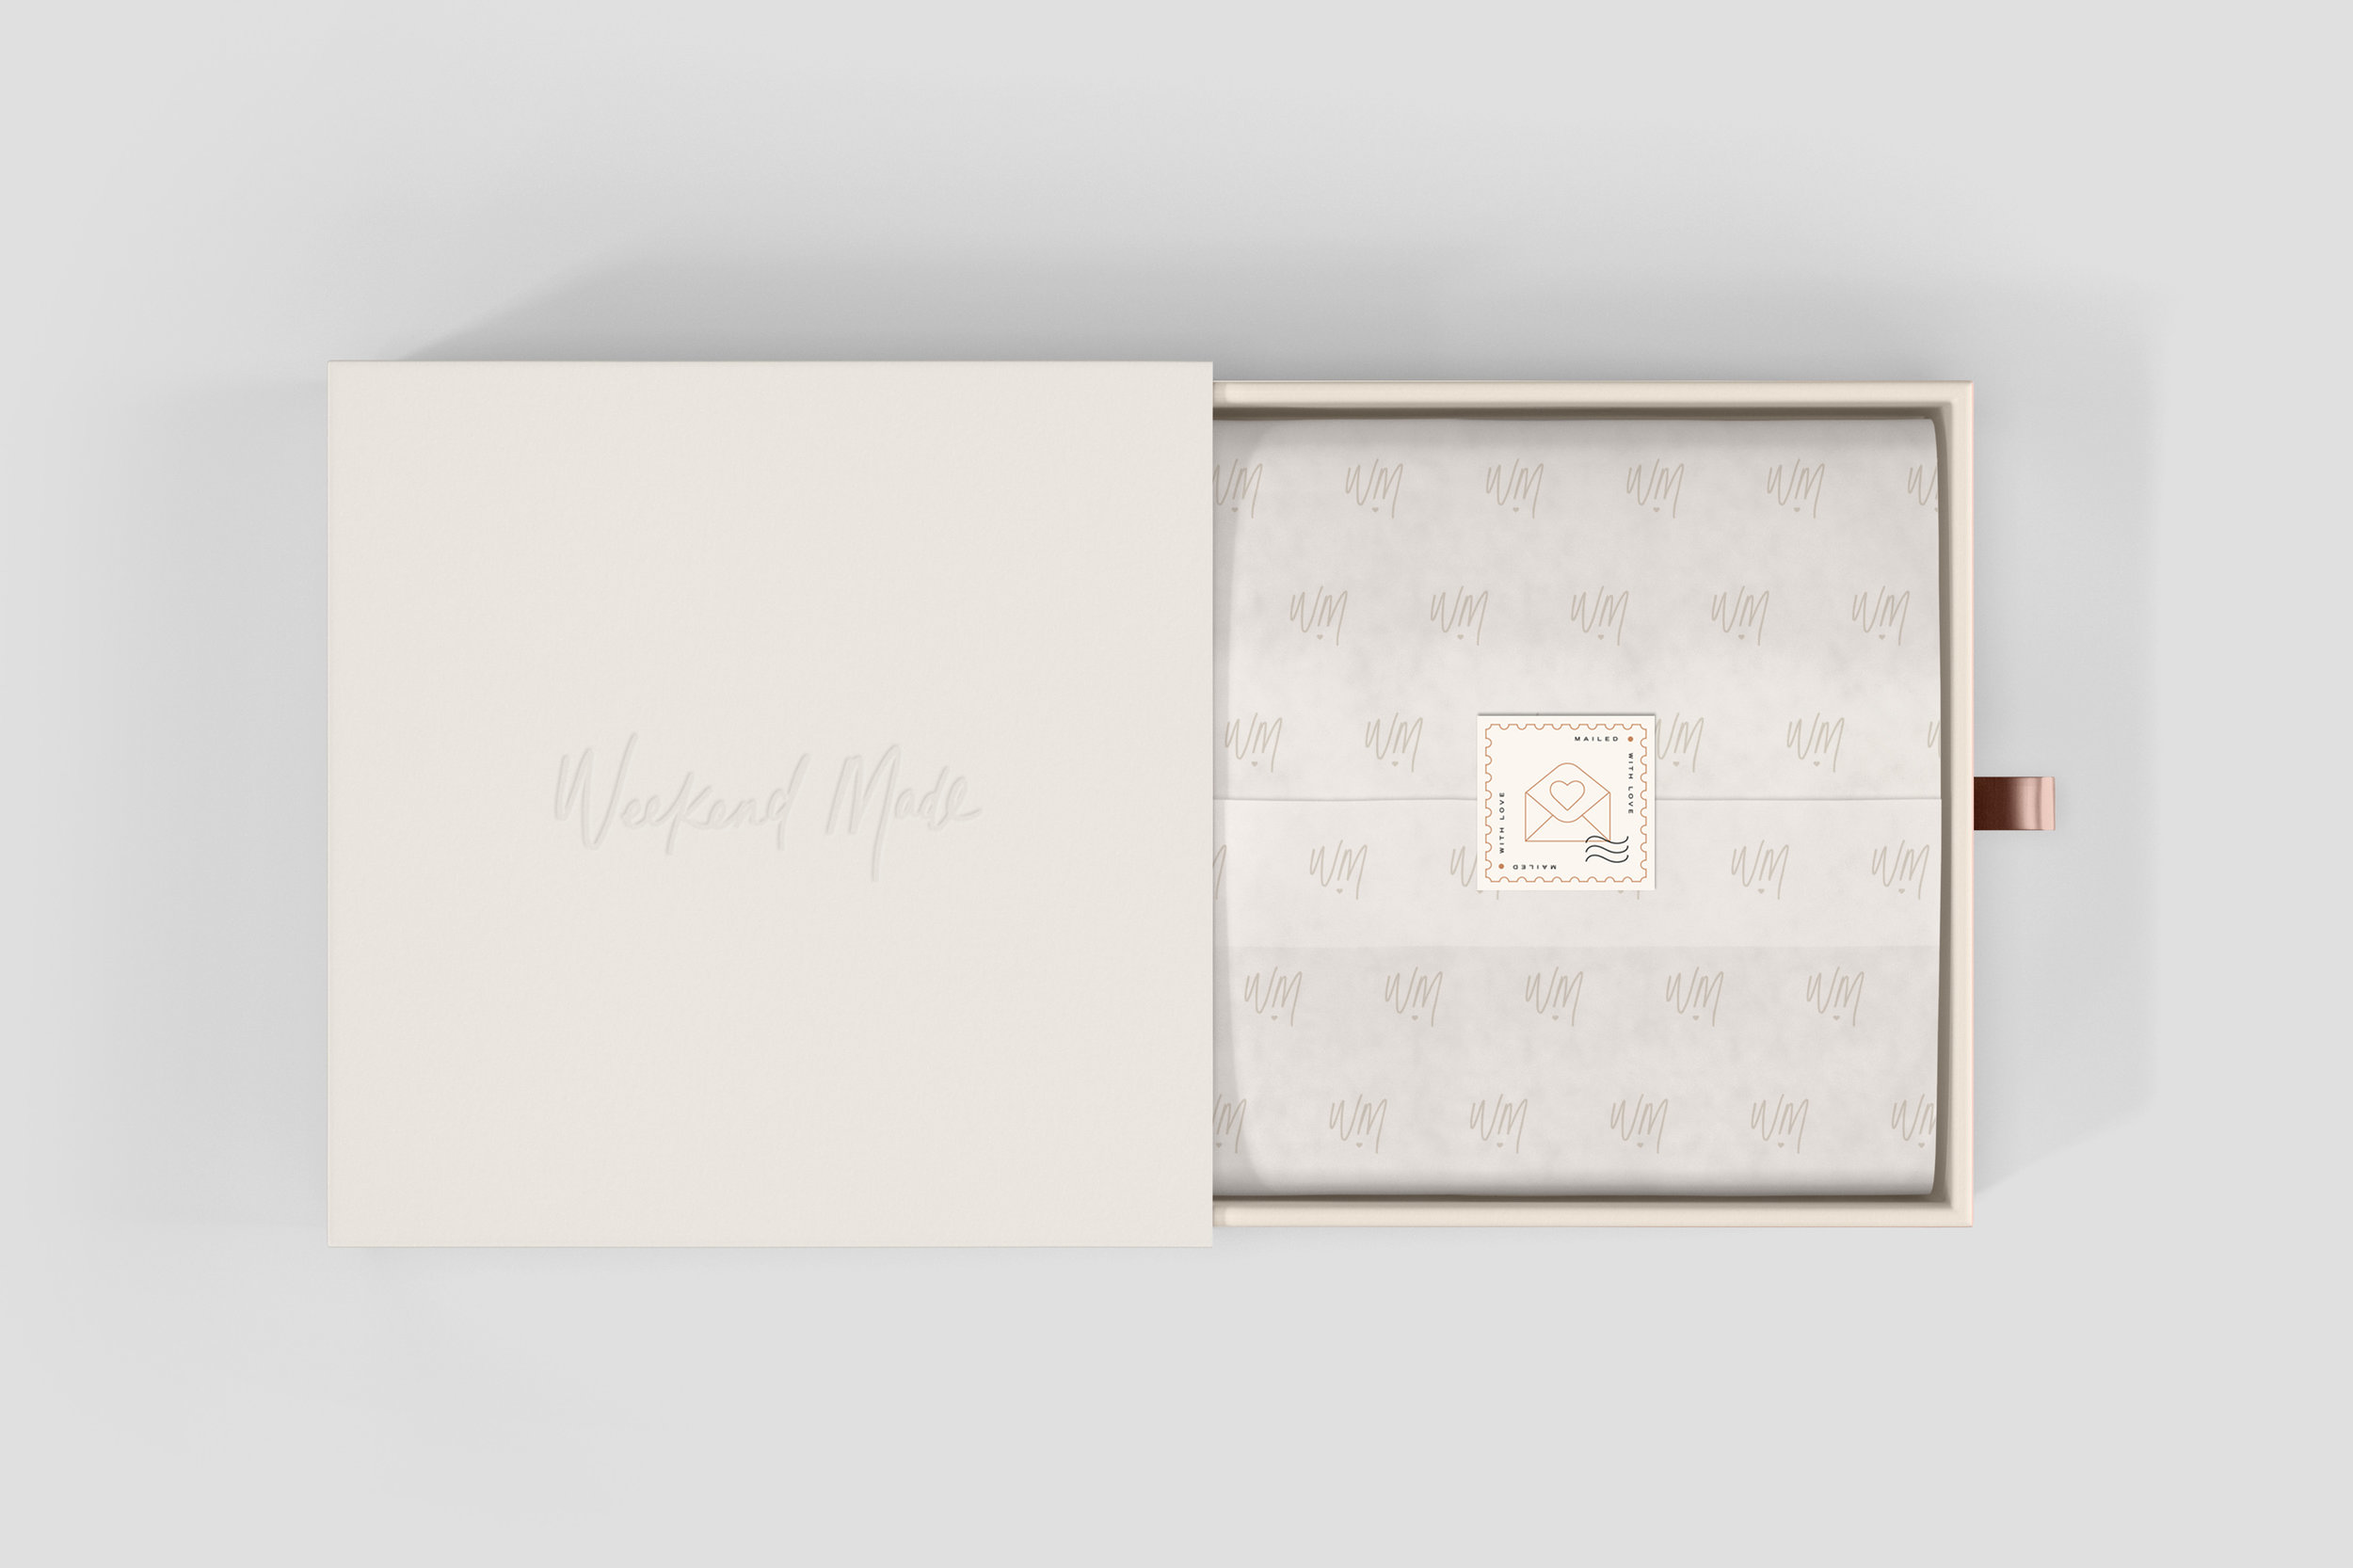 WeekendMade-Box-Logo-Packaging-Design.jpg